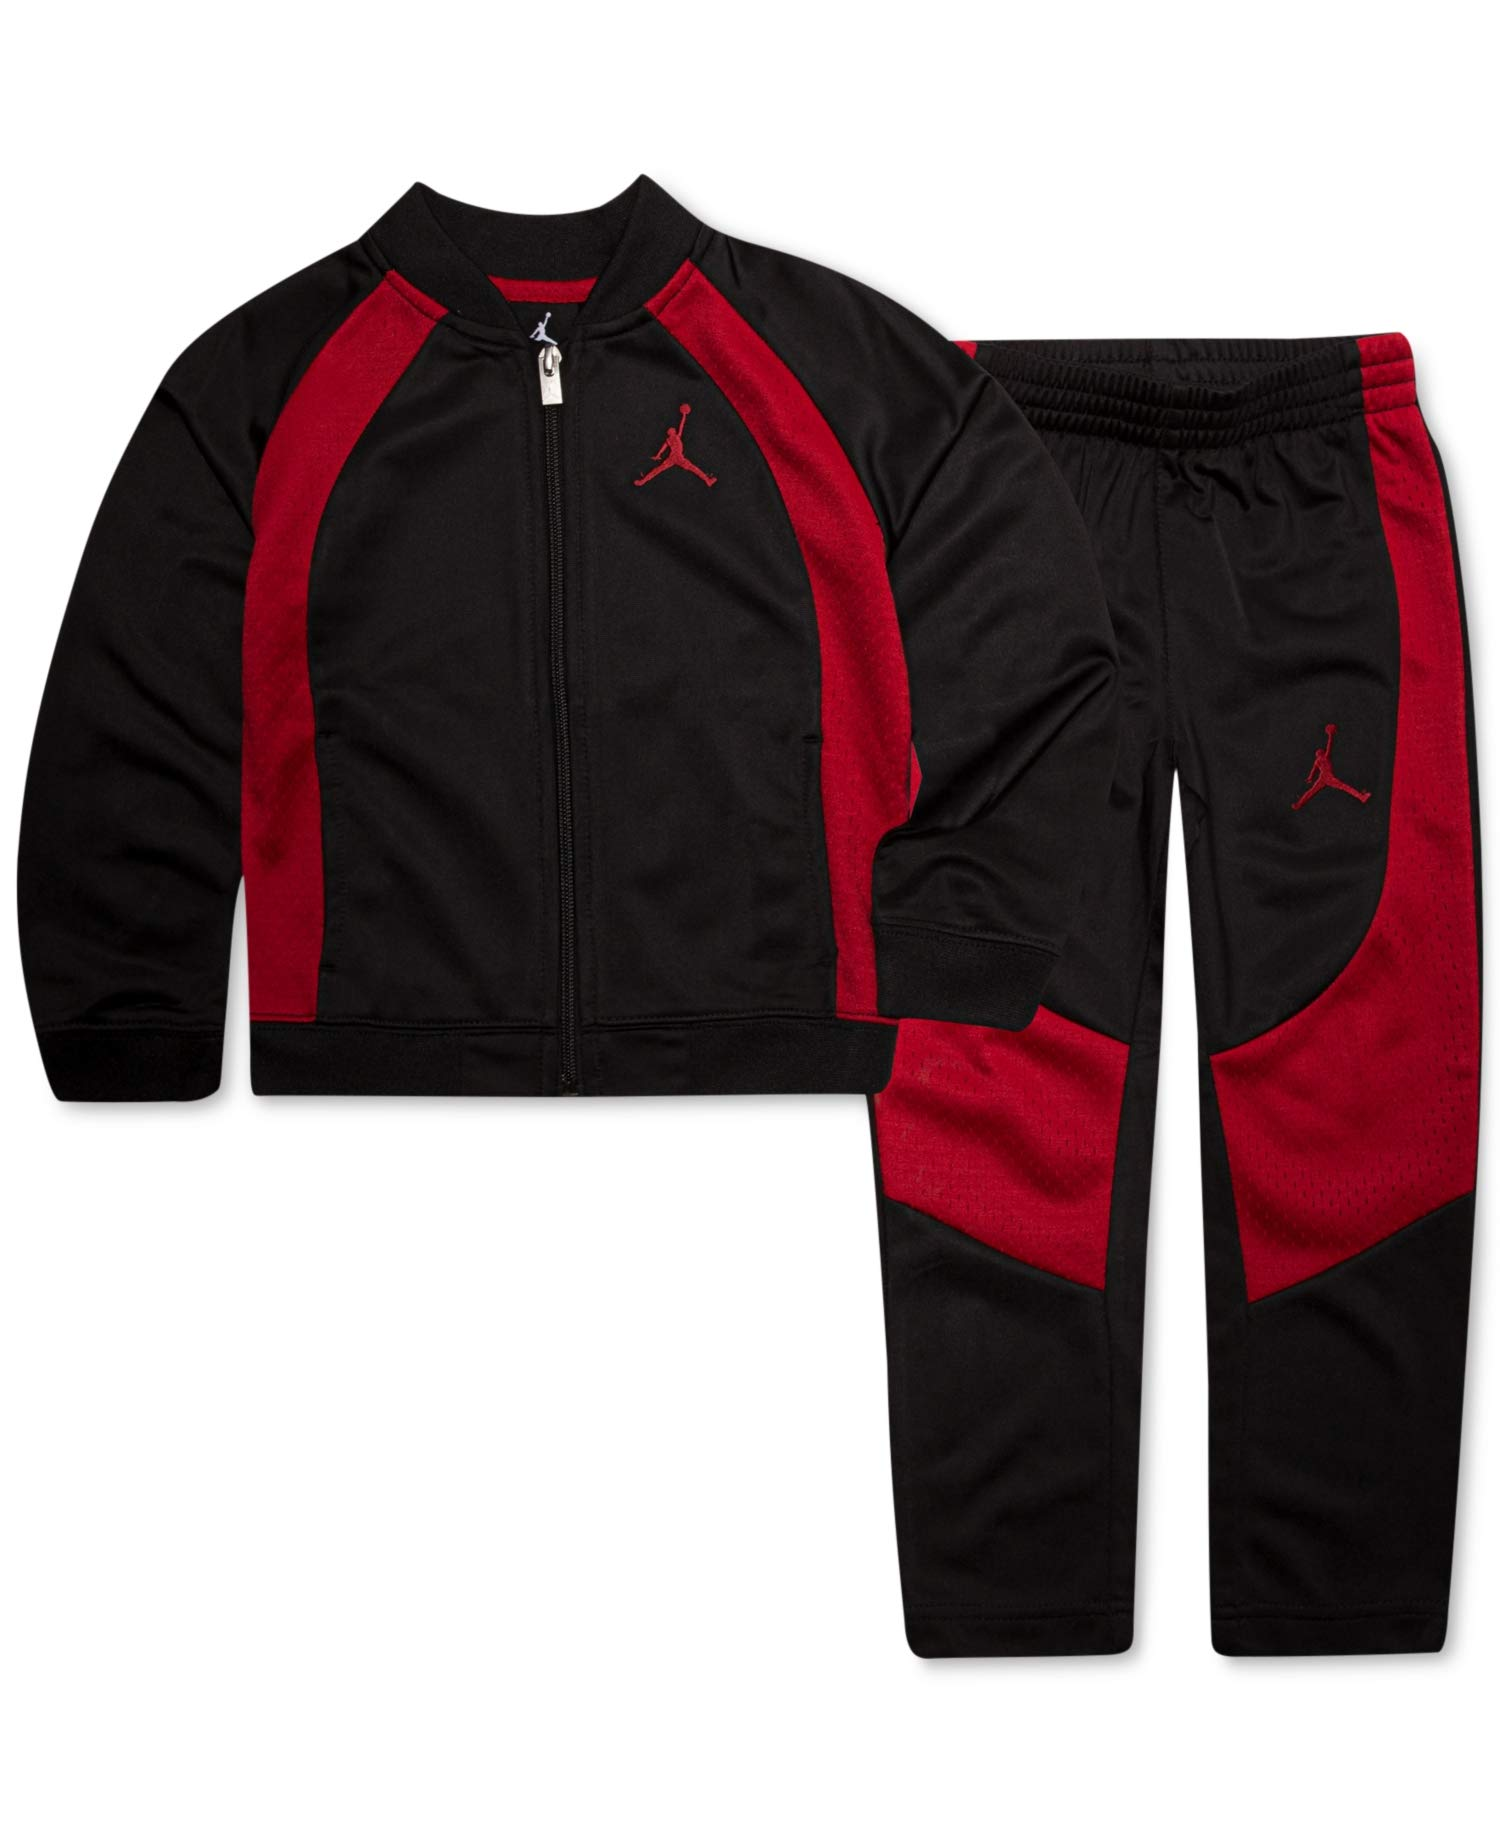 Nike Jordan Jumpman Boy Jacket Tracksuit Pants Outfit Set, Size 7 by Jordan